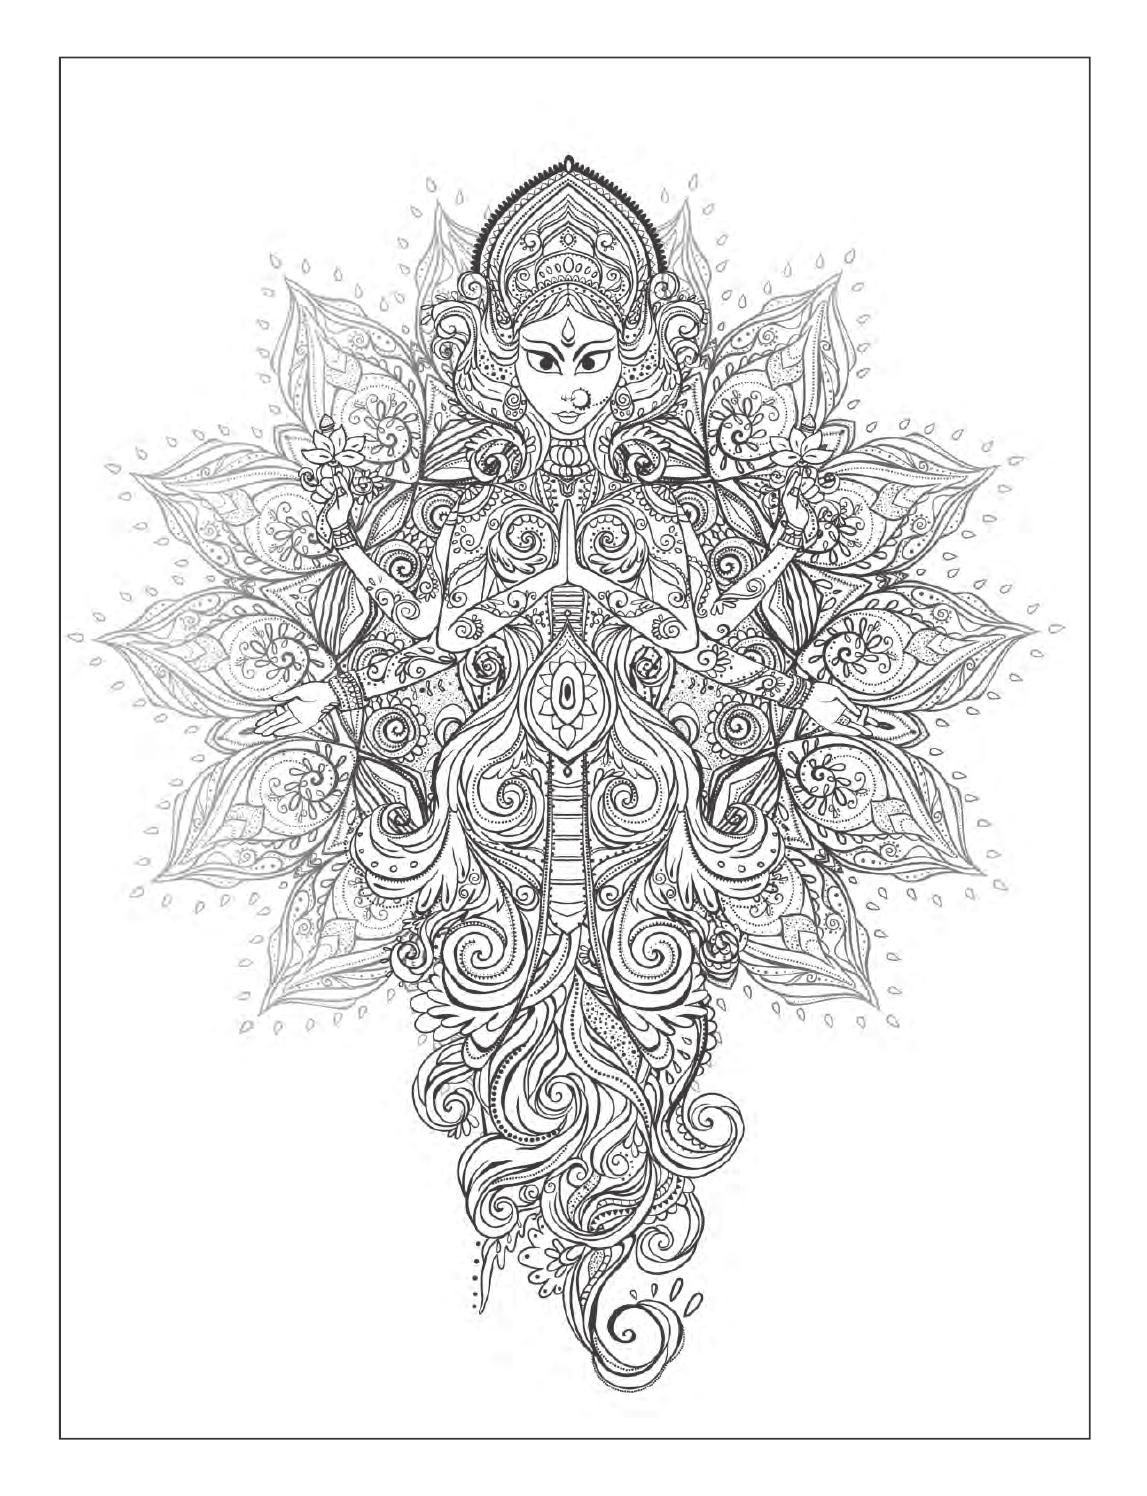 meditation coloring pages adult meditation coloring pages sketch coloring page meditation coloring pages 1 1